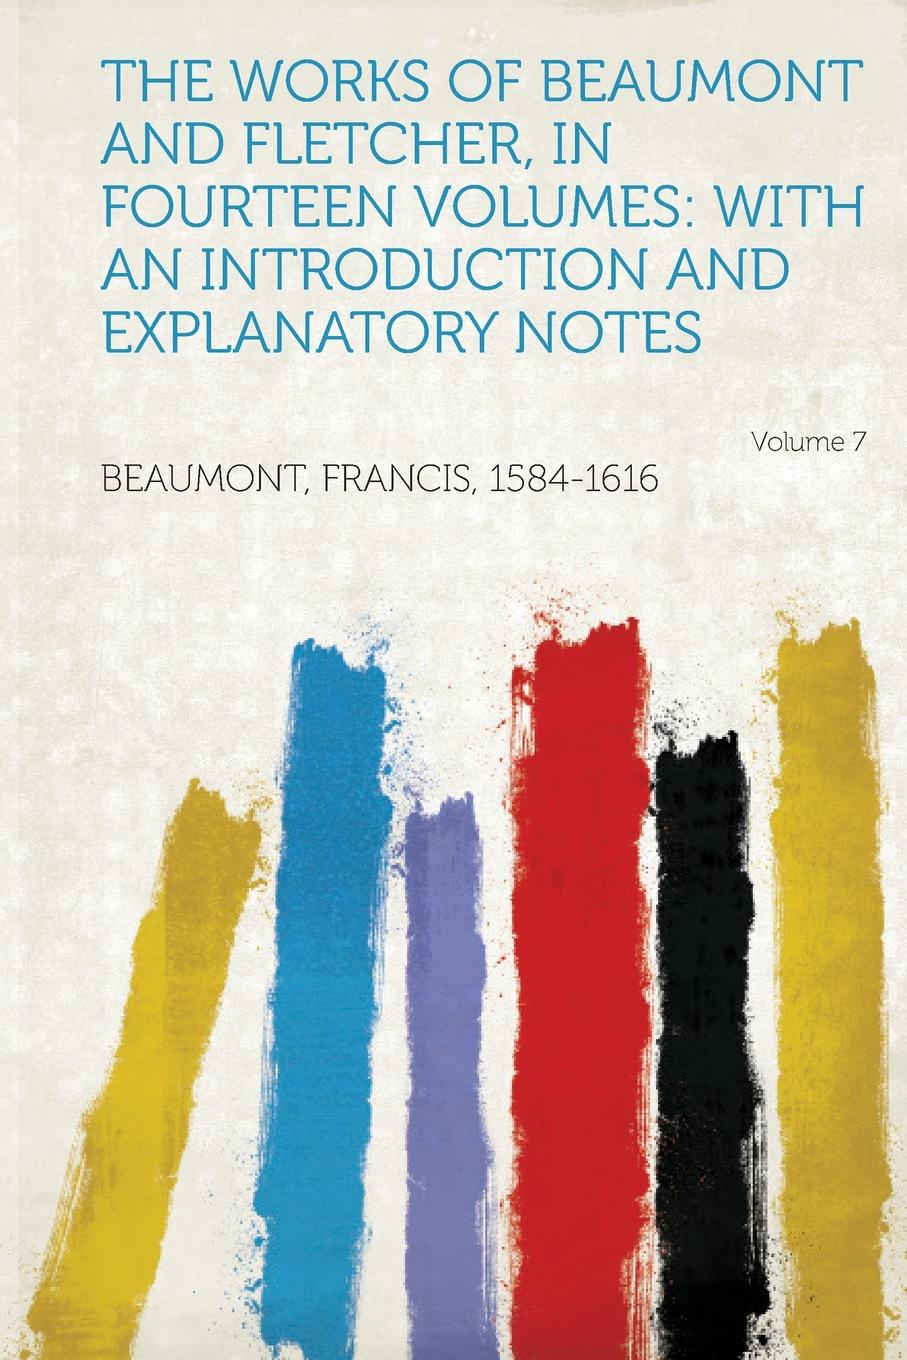 Francis Beaumont The Works of Beaumont and Fletcher, in Fourteen Volumes. With an Introduction and Explanatory Notes Volume 7 francis beaumont the works of beaumont and fletcher in fourteen volumes with an introduction and explanatory notes volume 2